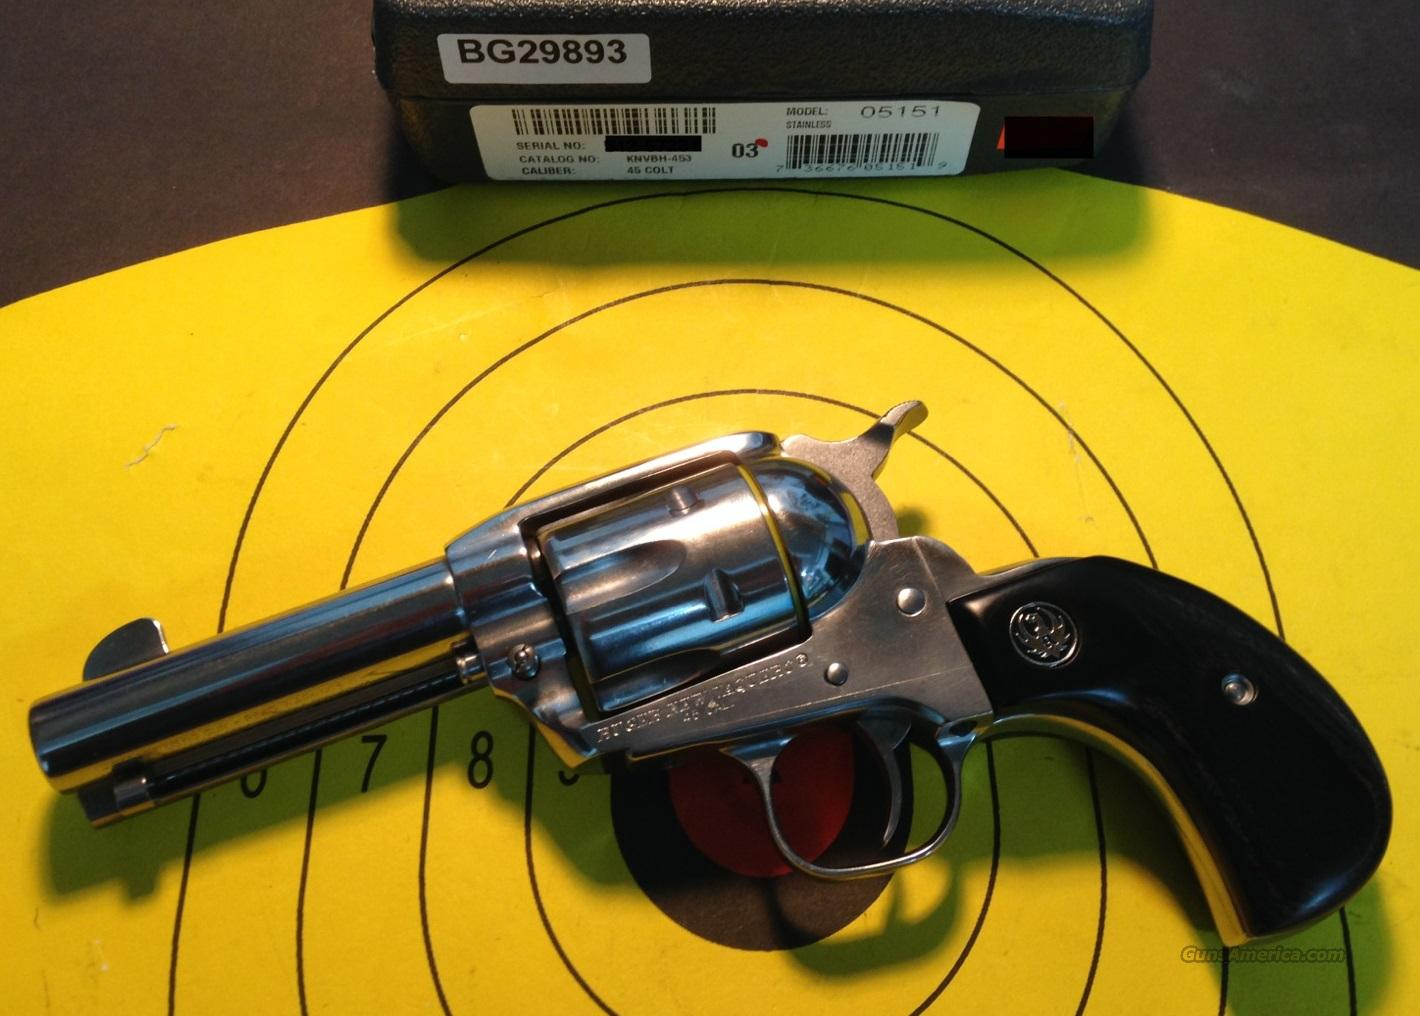 "RUGER NEW VAQUERO BIRDS HEAD GRIP KNVBH-453 45 COLT 3 3/4"" REVOLVER(05151)  Guns > Pistols > Ruger Single Action Revolvers > Cowboy Action"